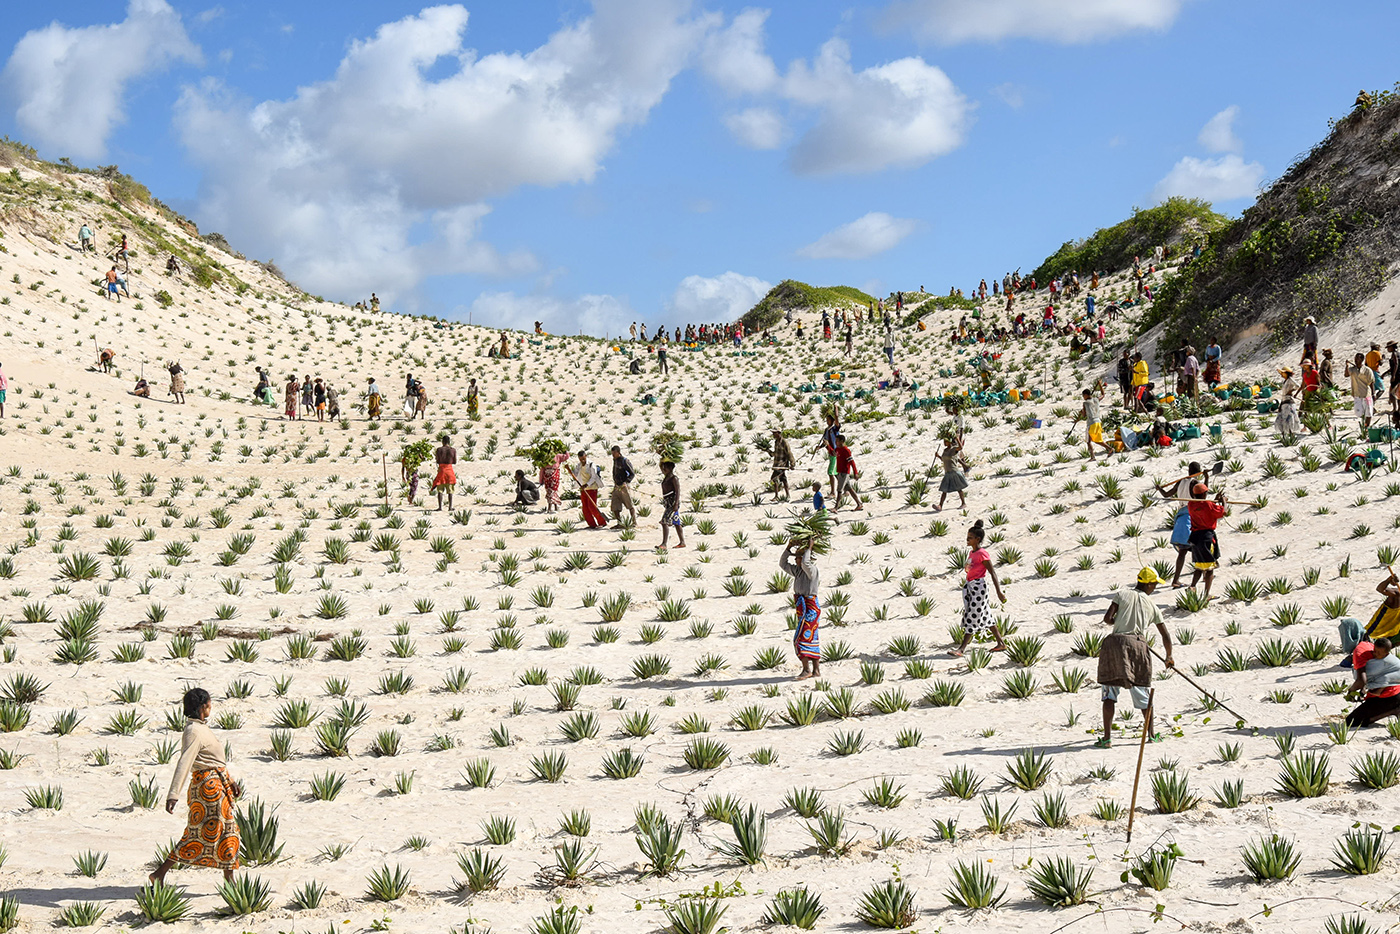 Faux-Cap communities seed plants to stabilize the creeping dunes which bury crops and homes. ©UNDP Madagascar/M. Mazou